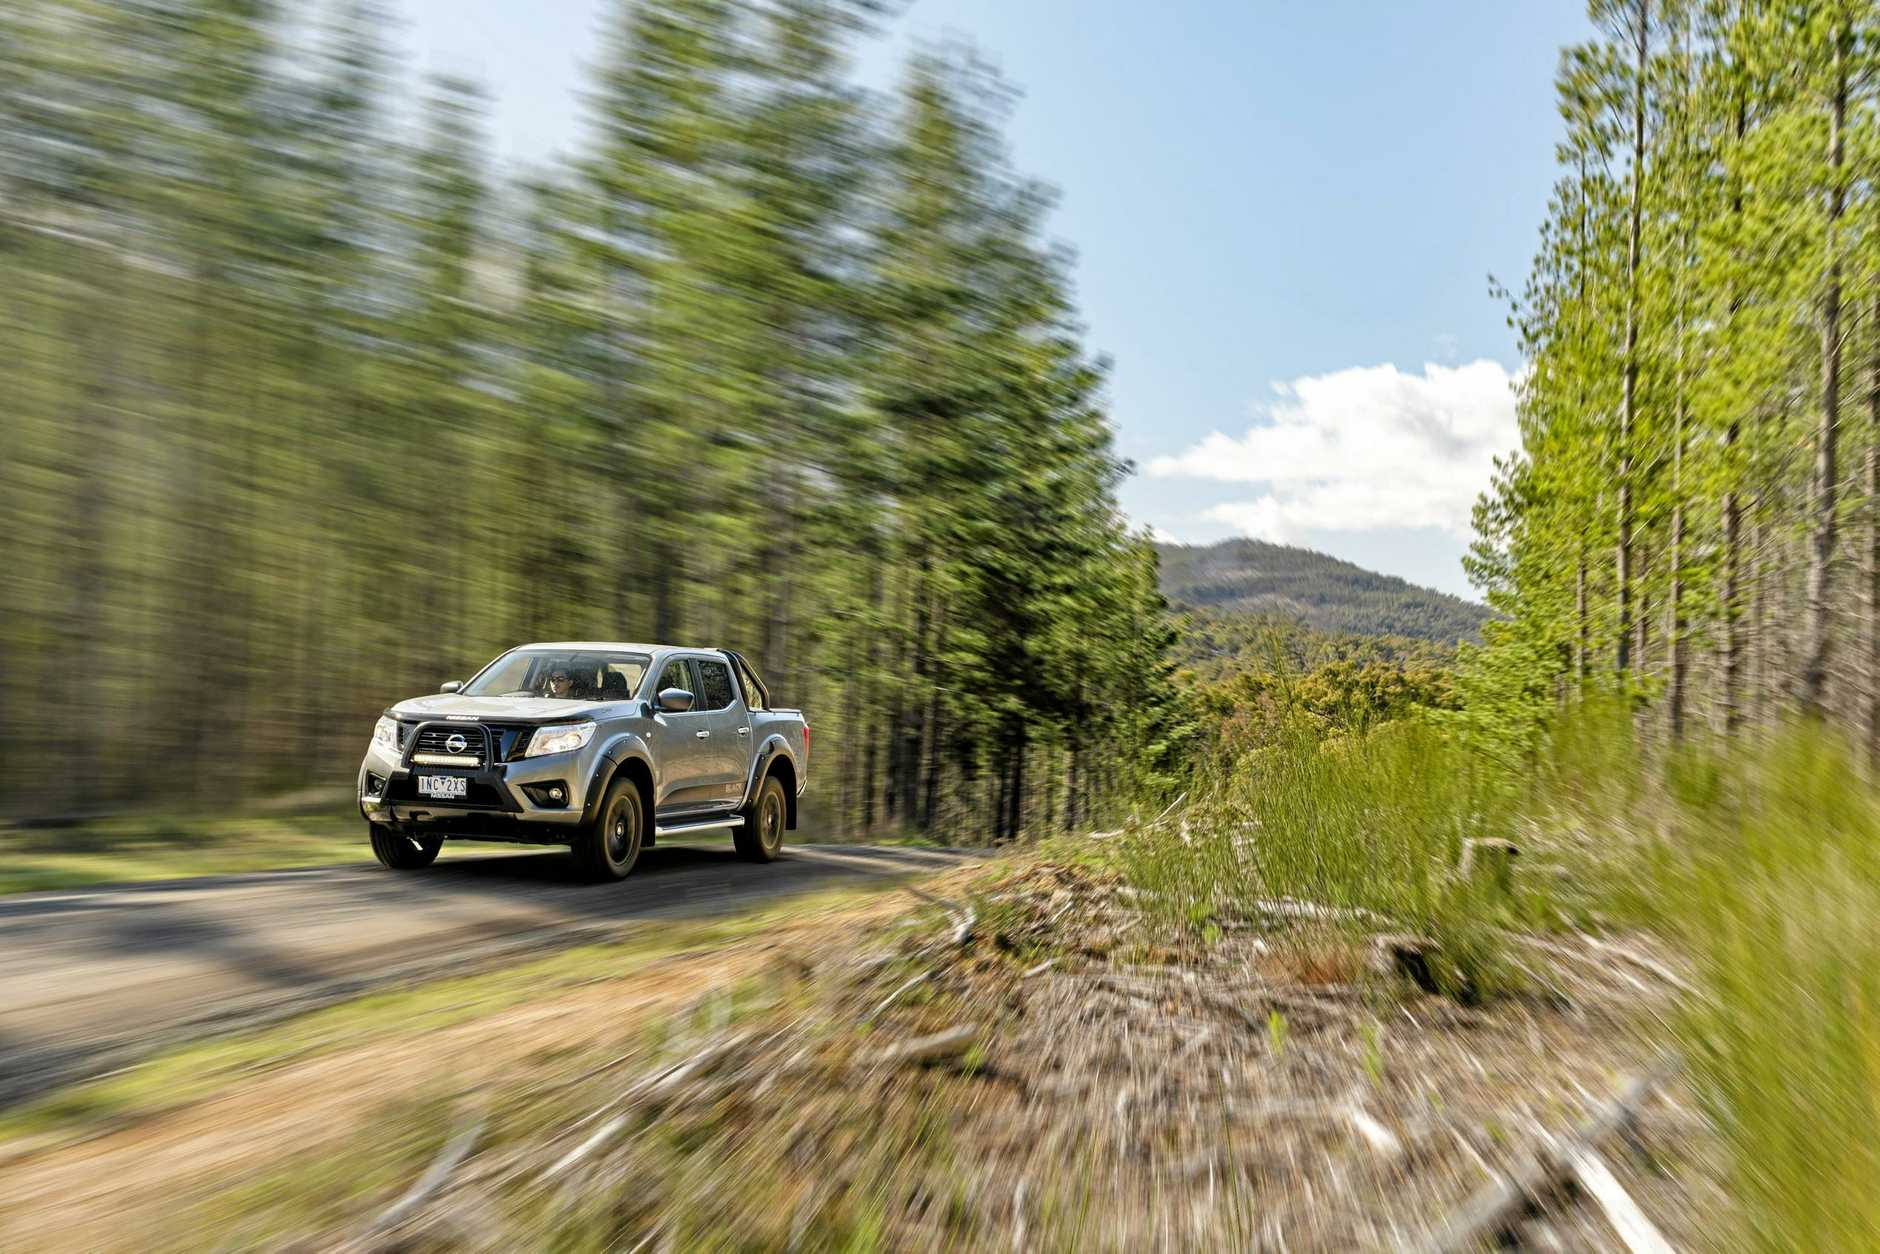 Nissan has released two special edition models, headlined by the Black Edition which starts from $47,190 plus on-roads.